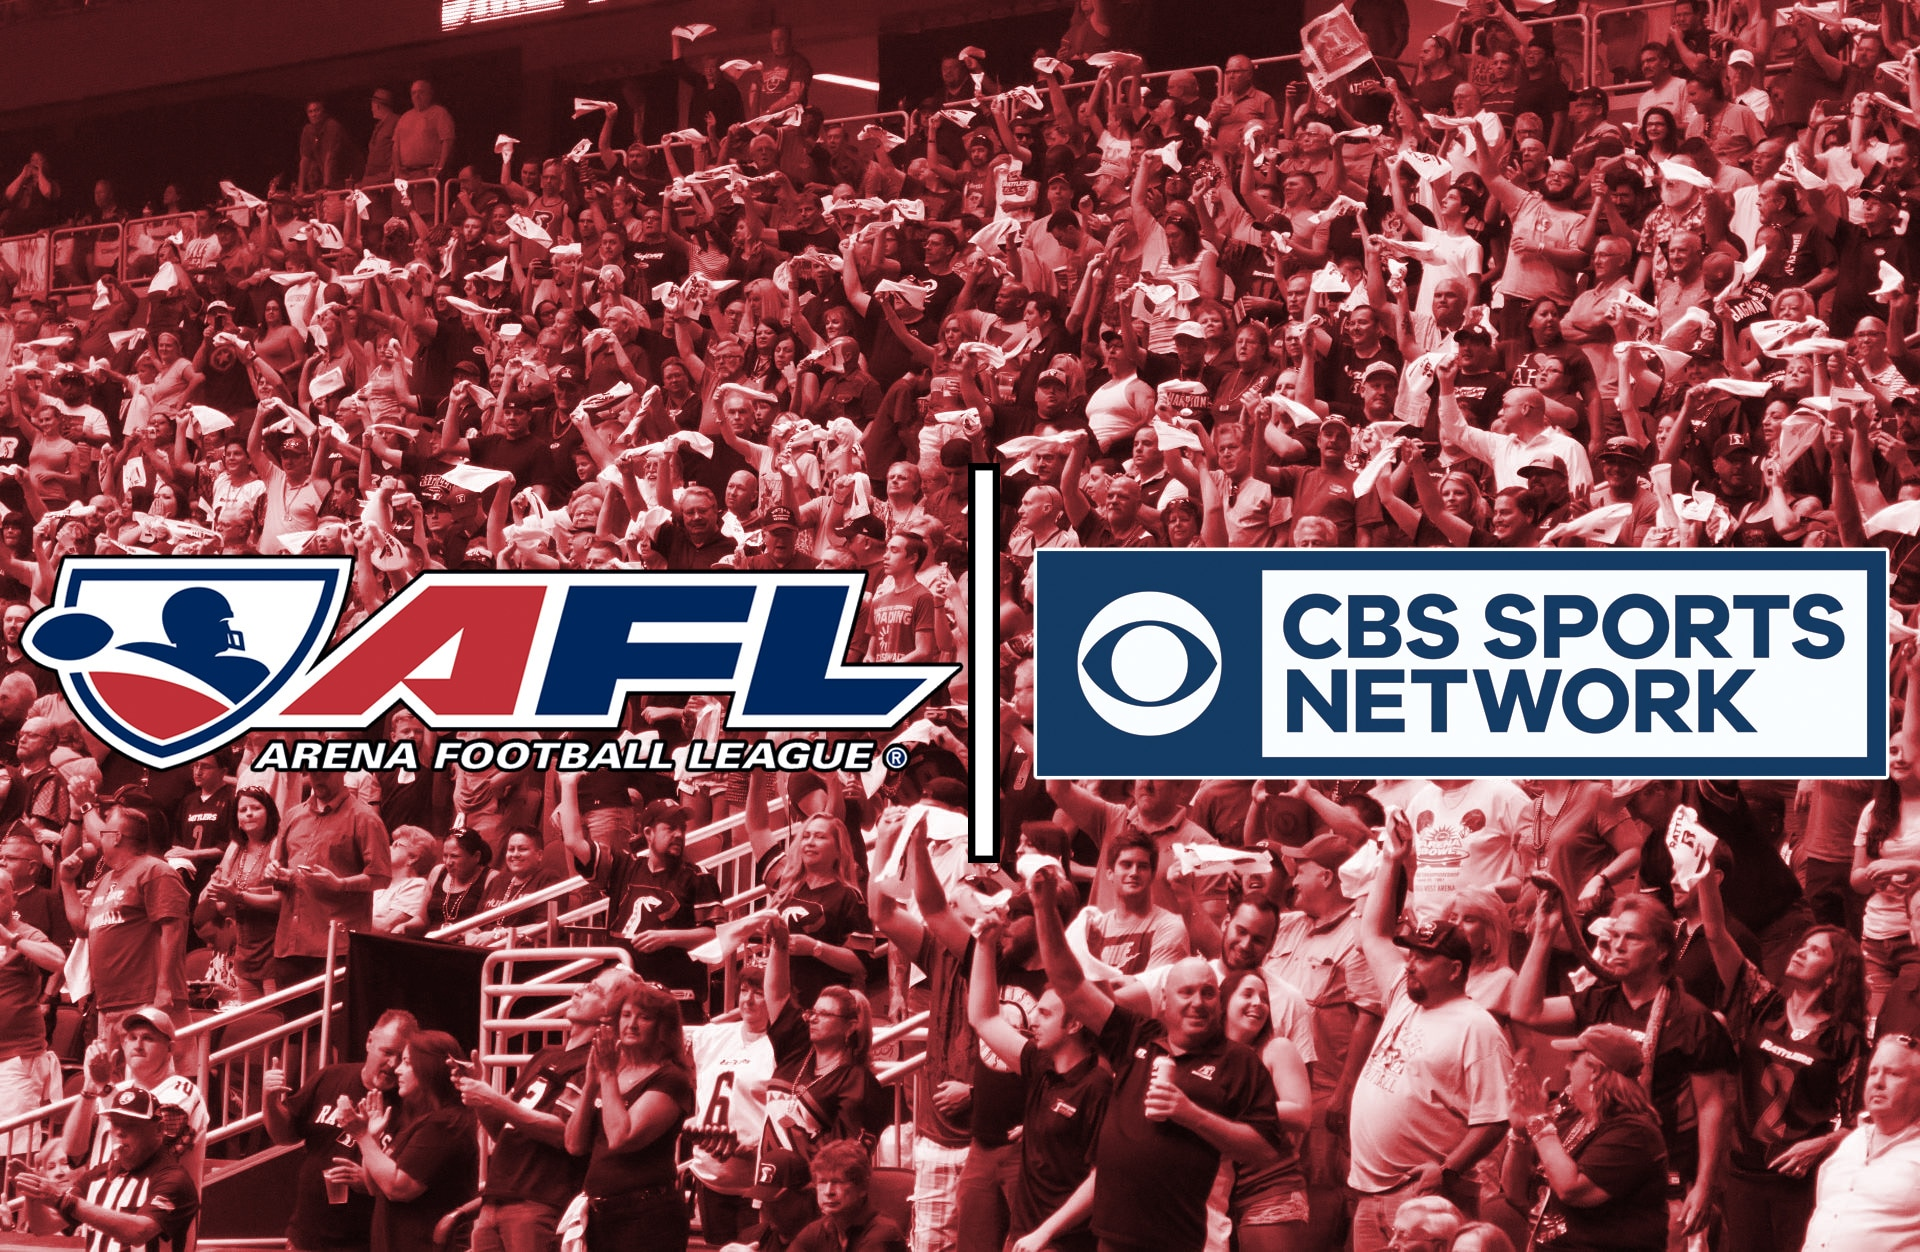 arena football league and cbs sports network announce 2018 telecast